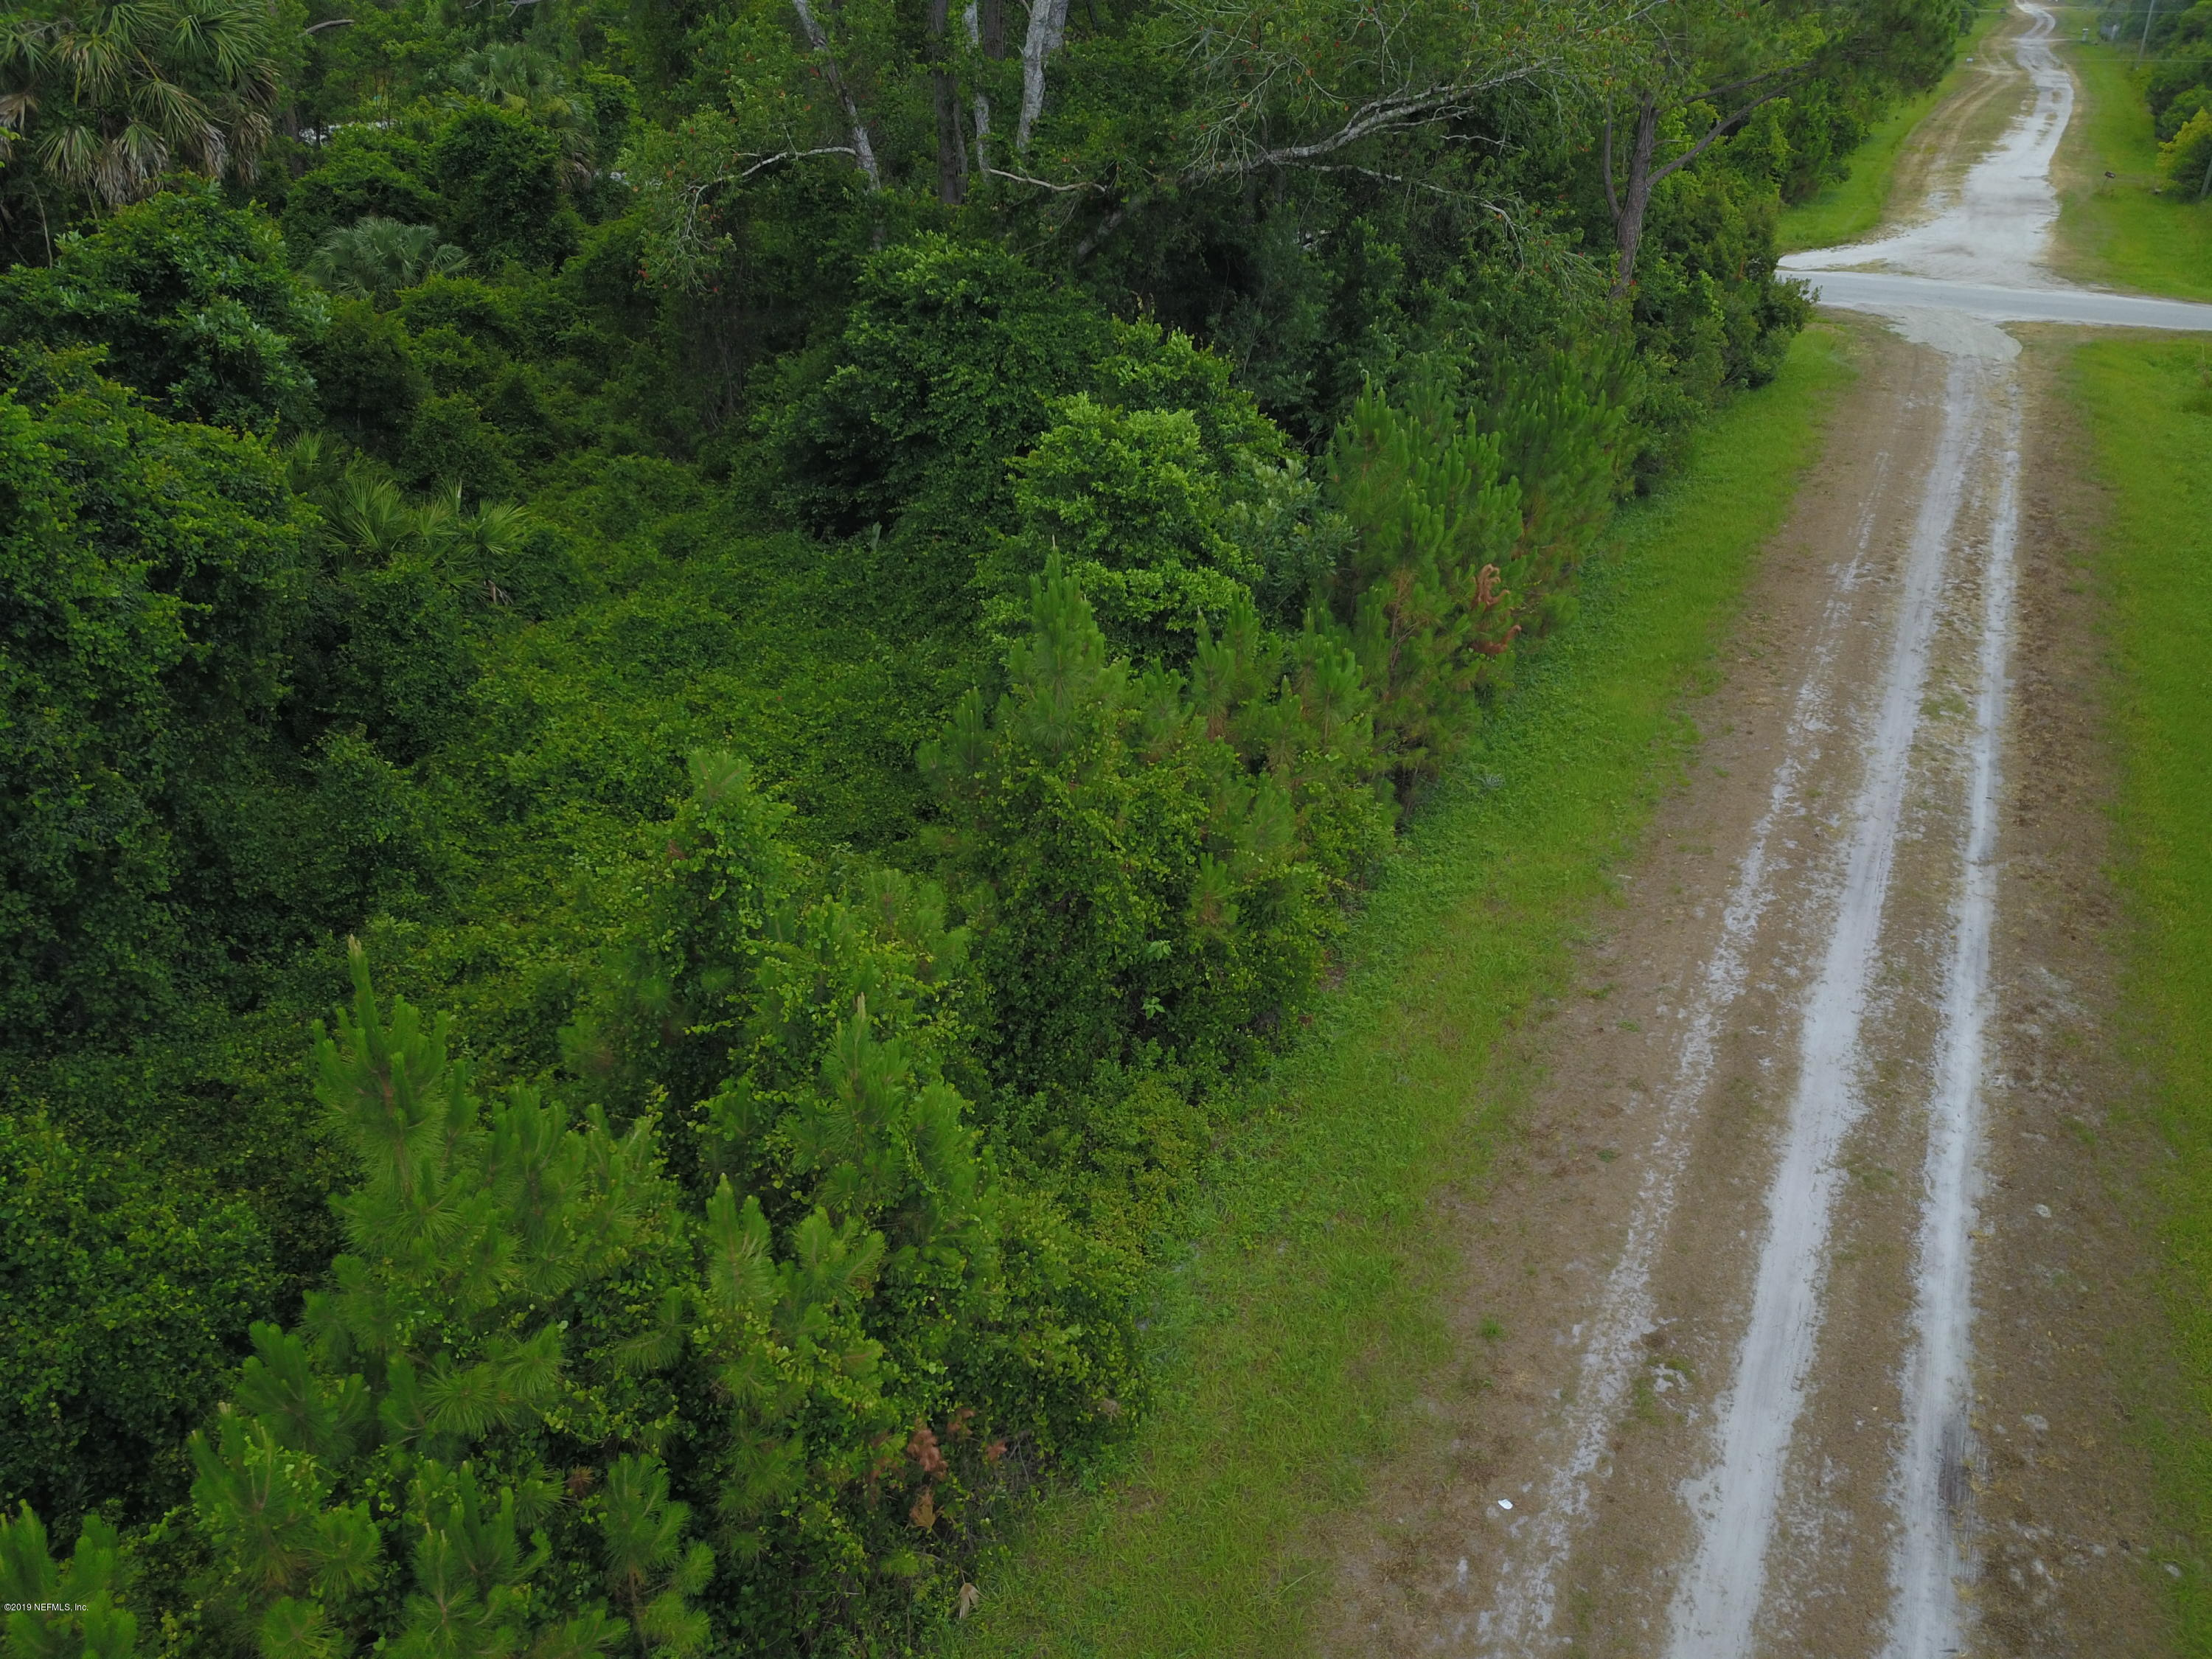 432 / 434 REDWOOD, GEORGETOWN, FLORIDA 32139, ,Vacant land,For sale,REDWOOD,999989